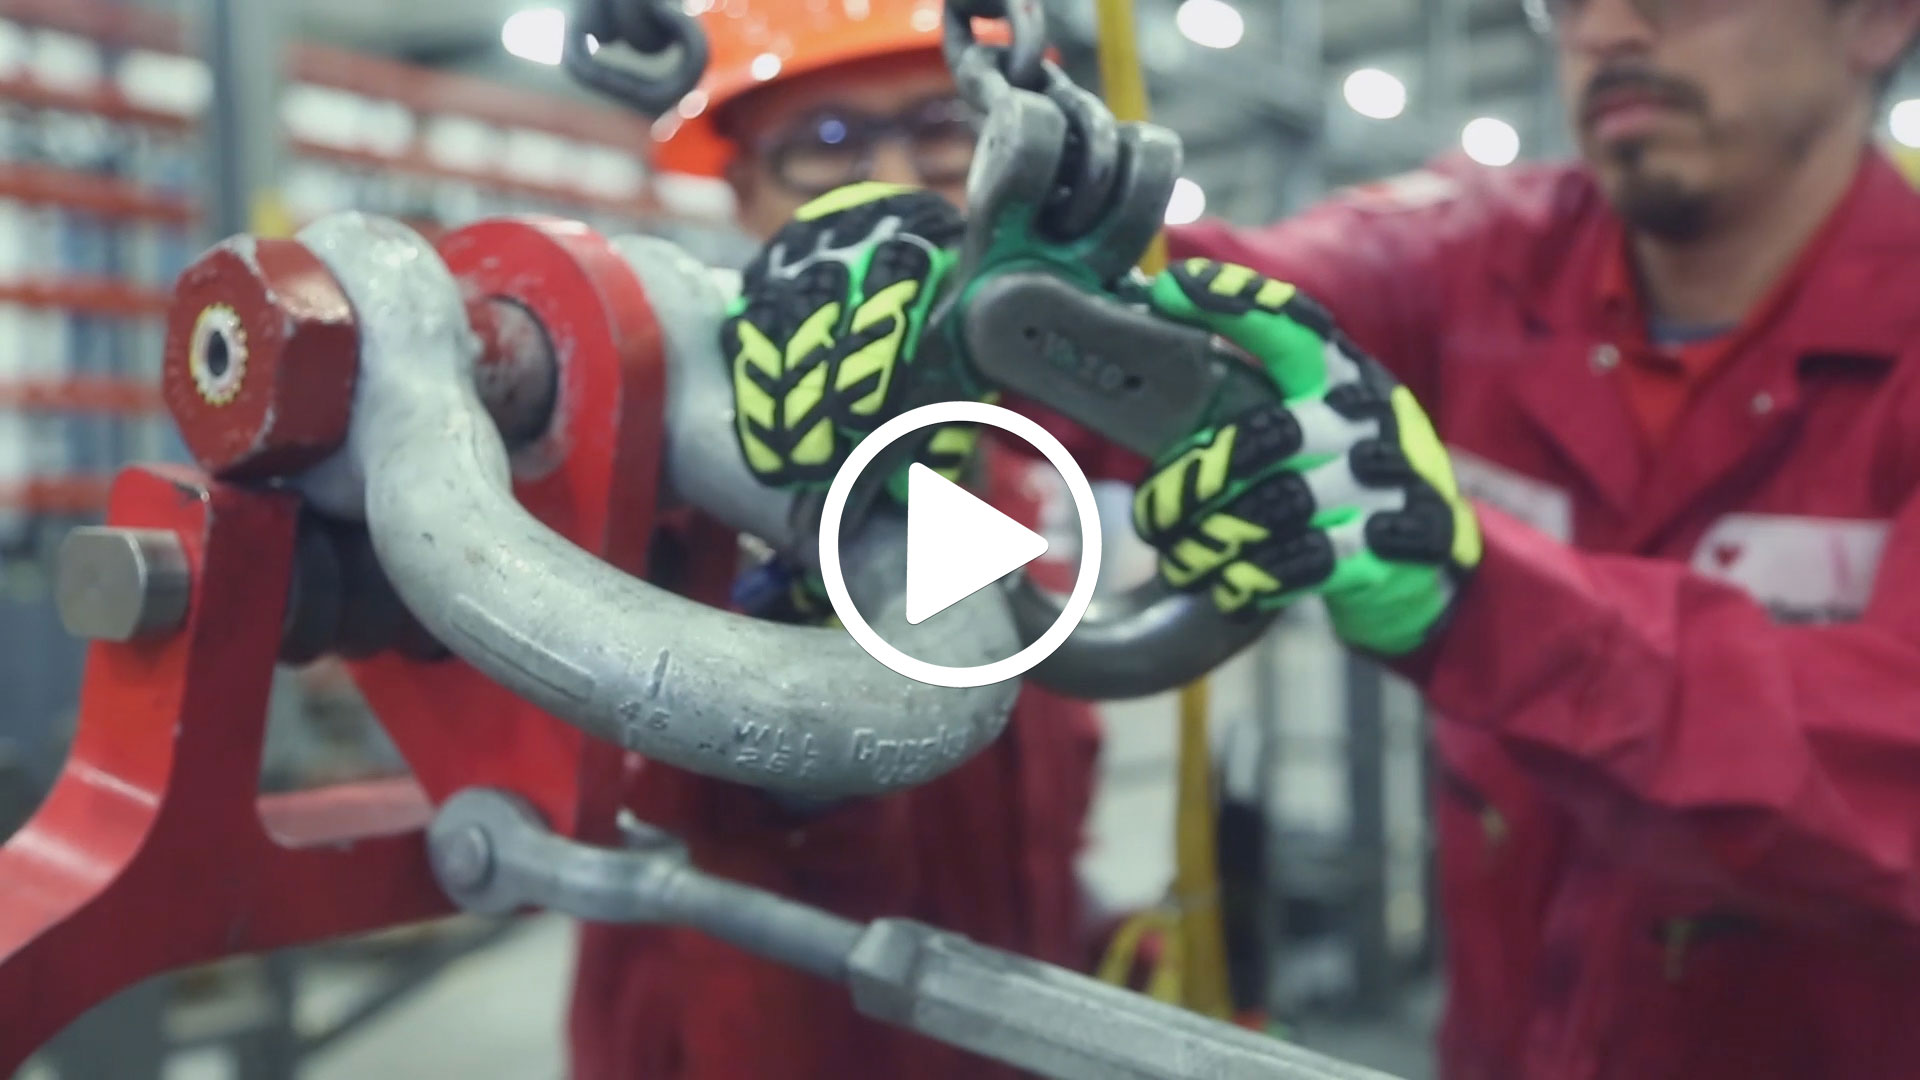 Watch our careers video for available job opening Field Service Technician (Gas Lift) in Williston , ND